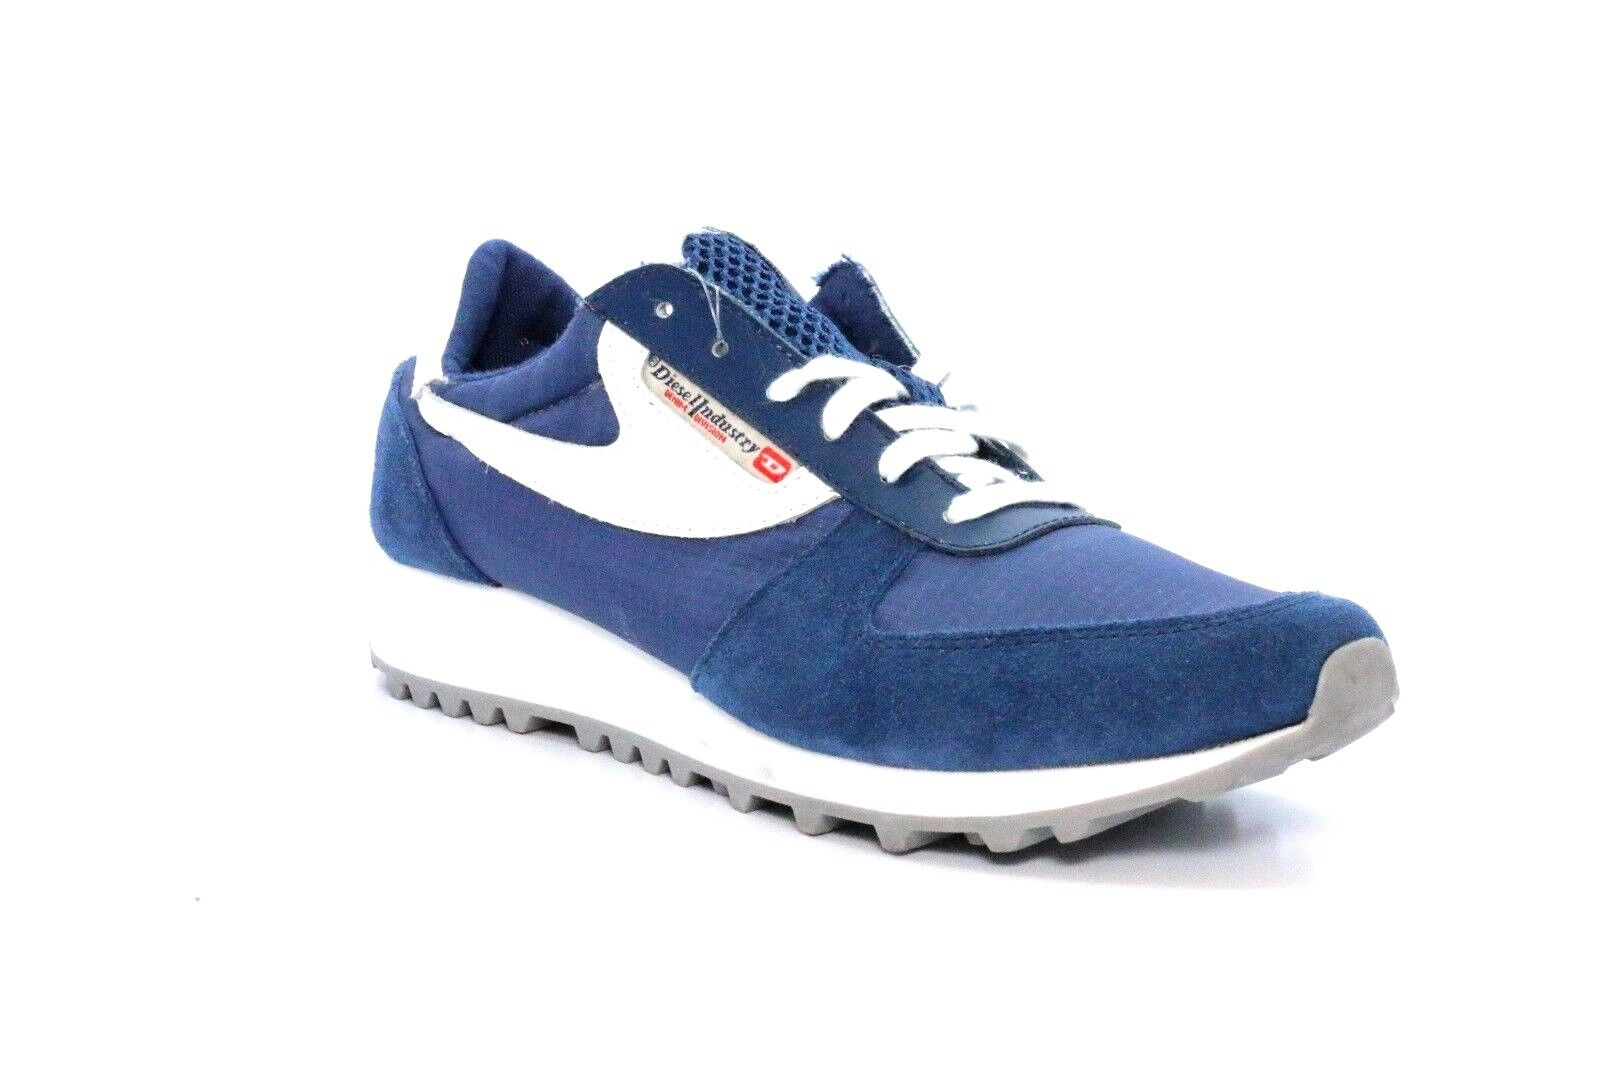 DIESEL Y01100 PS780 H4009 SHERUN Wmn's (M) bluee White Suede Lifestyle shoes